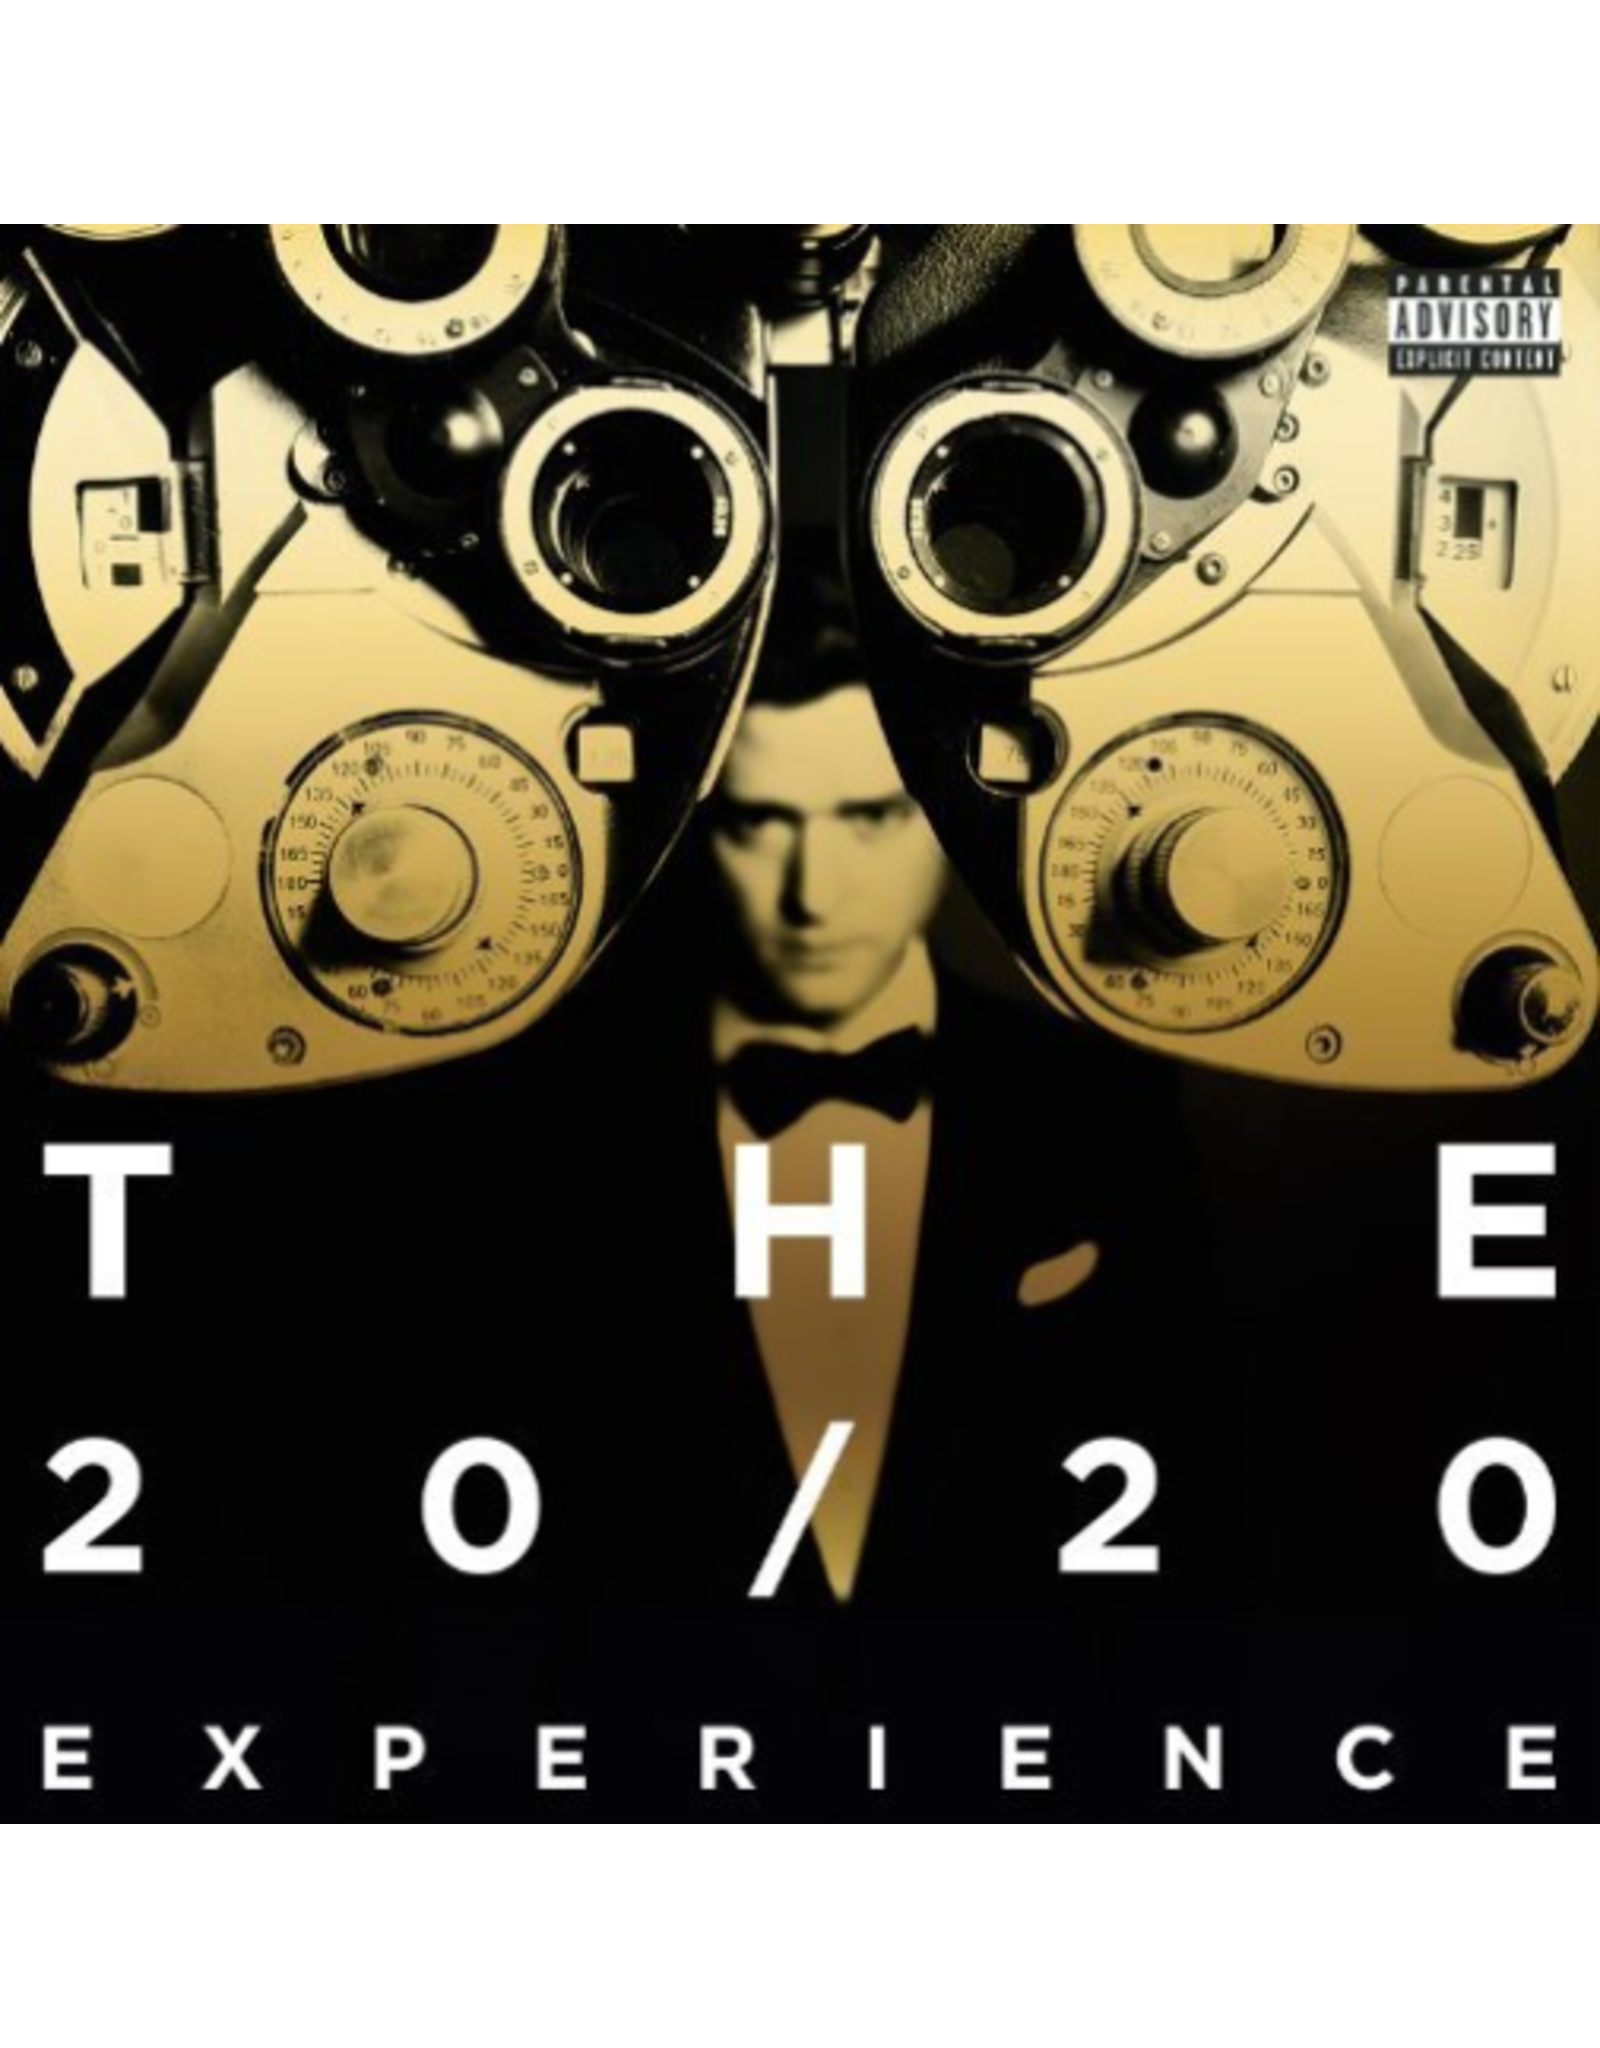 Timberlake, Justin - The 20/20 Experience - 2 of 2 CD